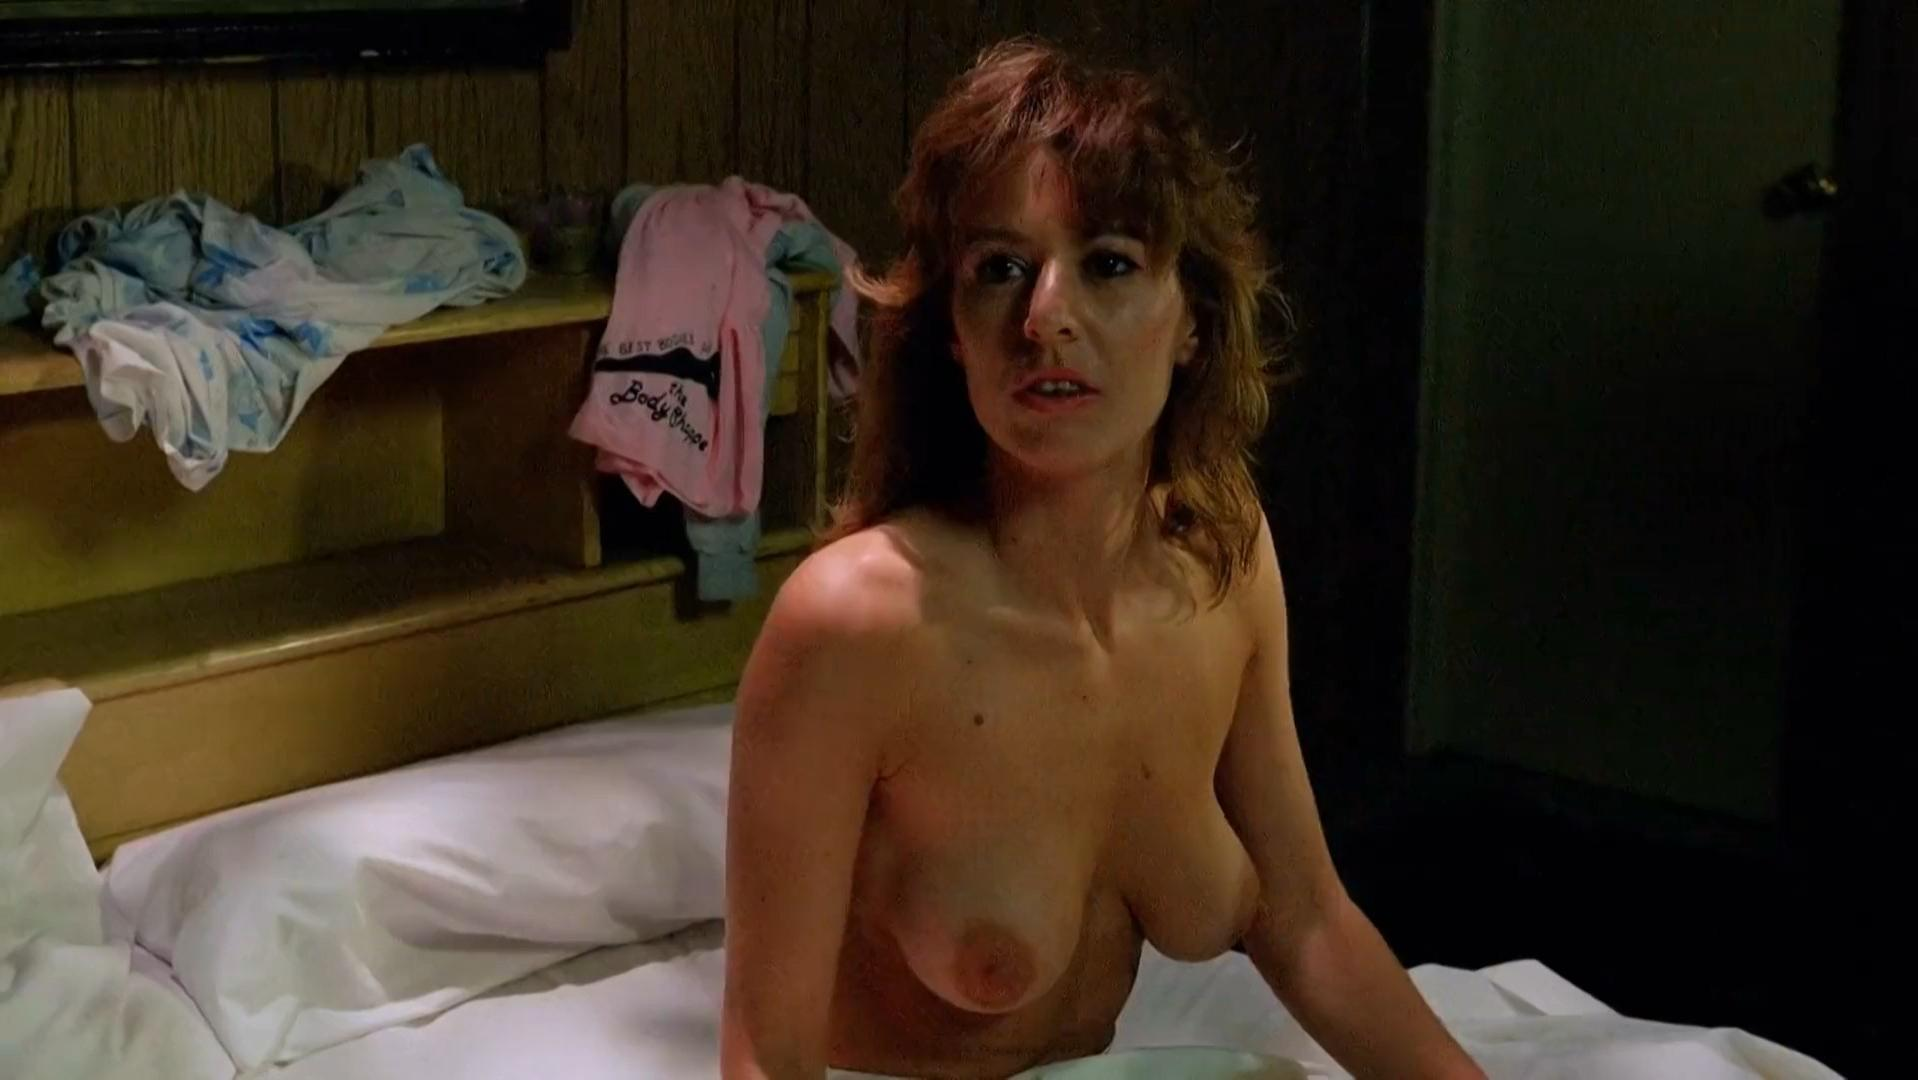 Esther Elise nude, Susie Wilson nude - Hollywood Chainsaw Hookers (1988)